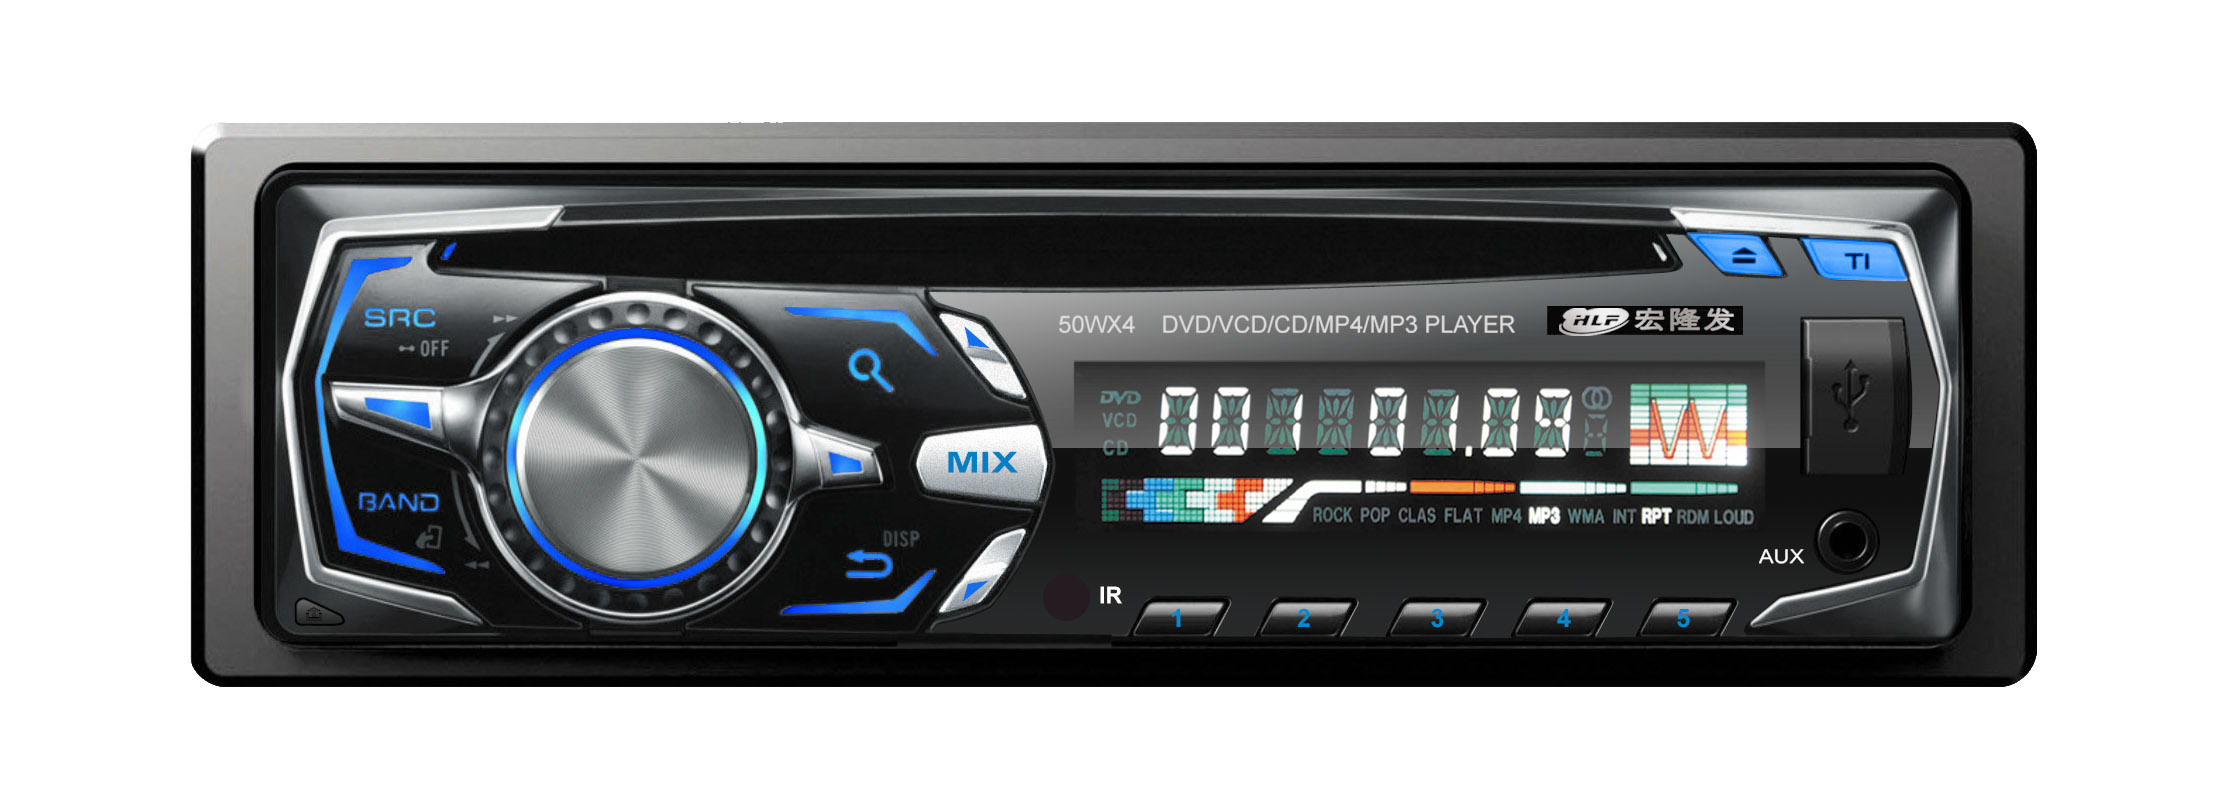 Single DIN Detachable Panel Car RDS Bluetooth MP3 MP4 with FM Transmitter